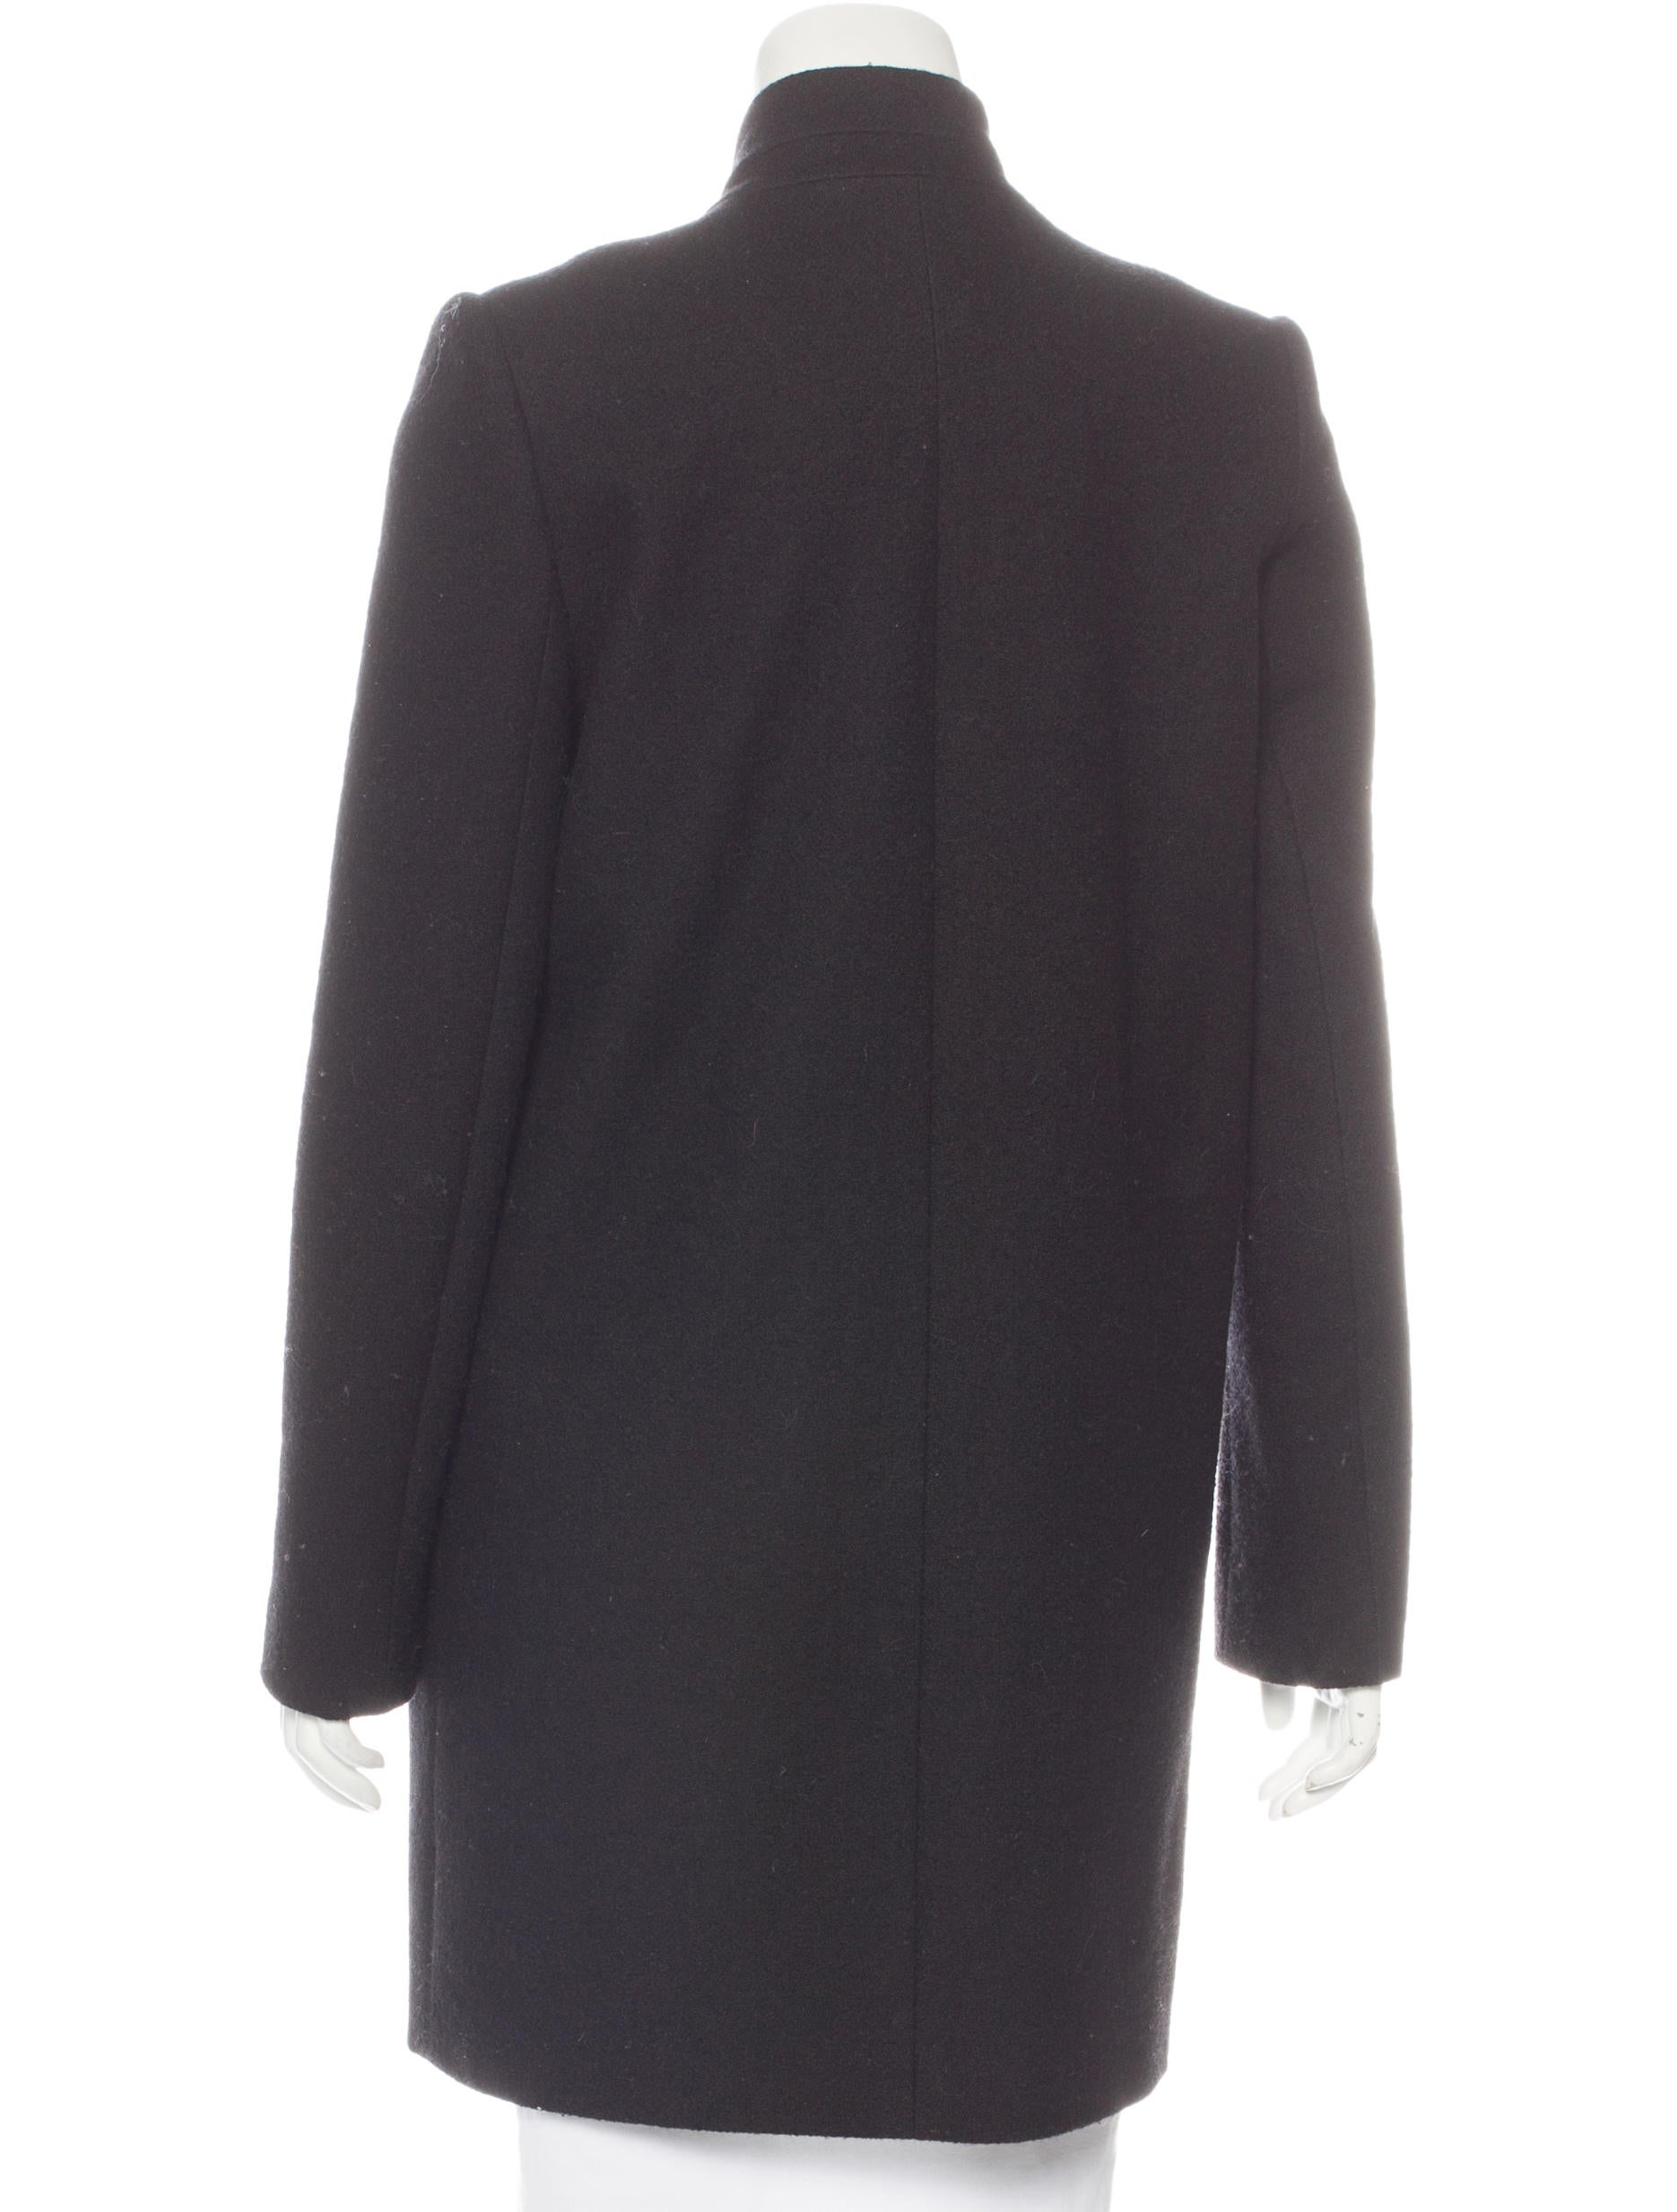 More Details Mackage Mila Button-Front Hooded Wool Trench Coat w/ Fur Trim Details Mackage